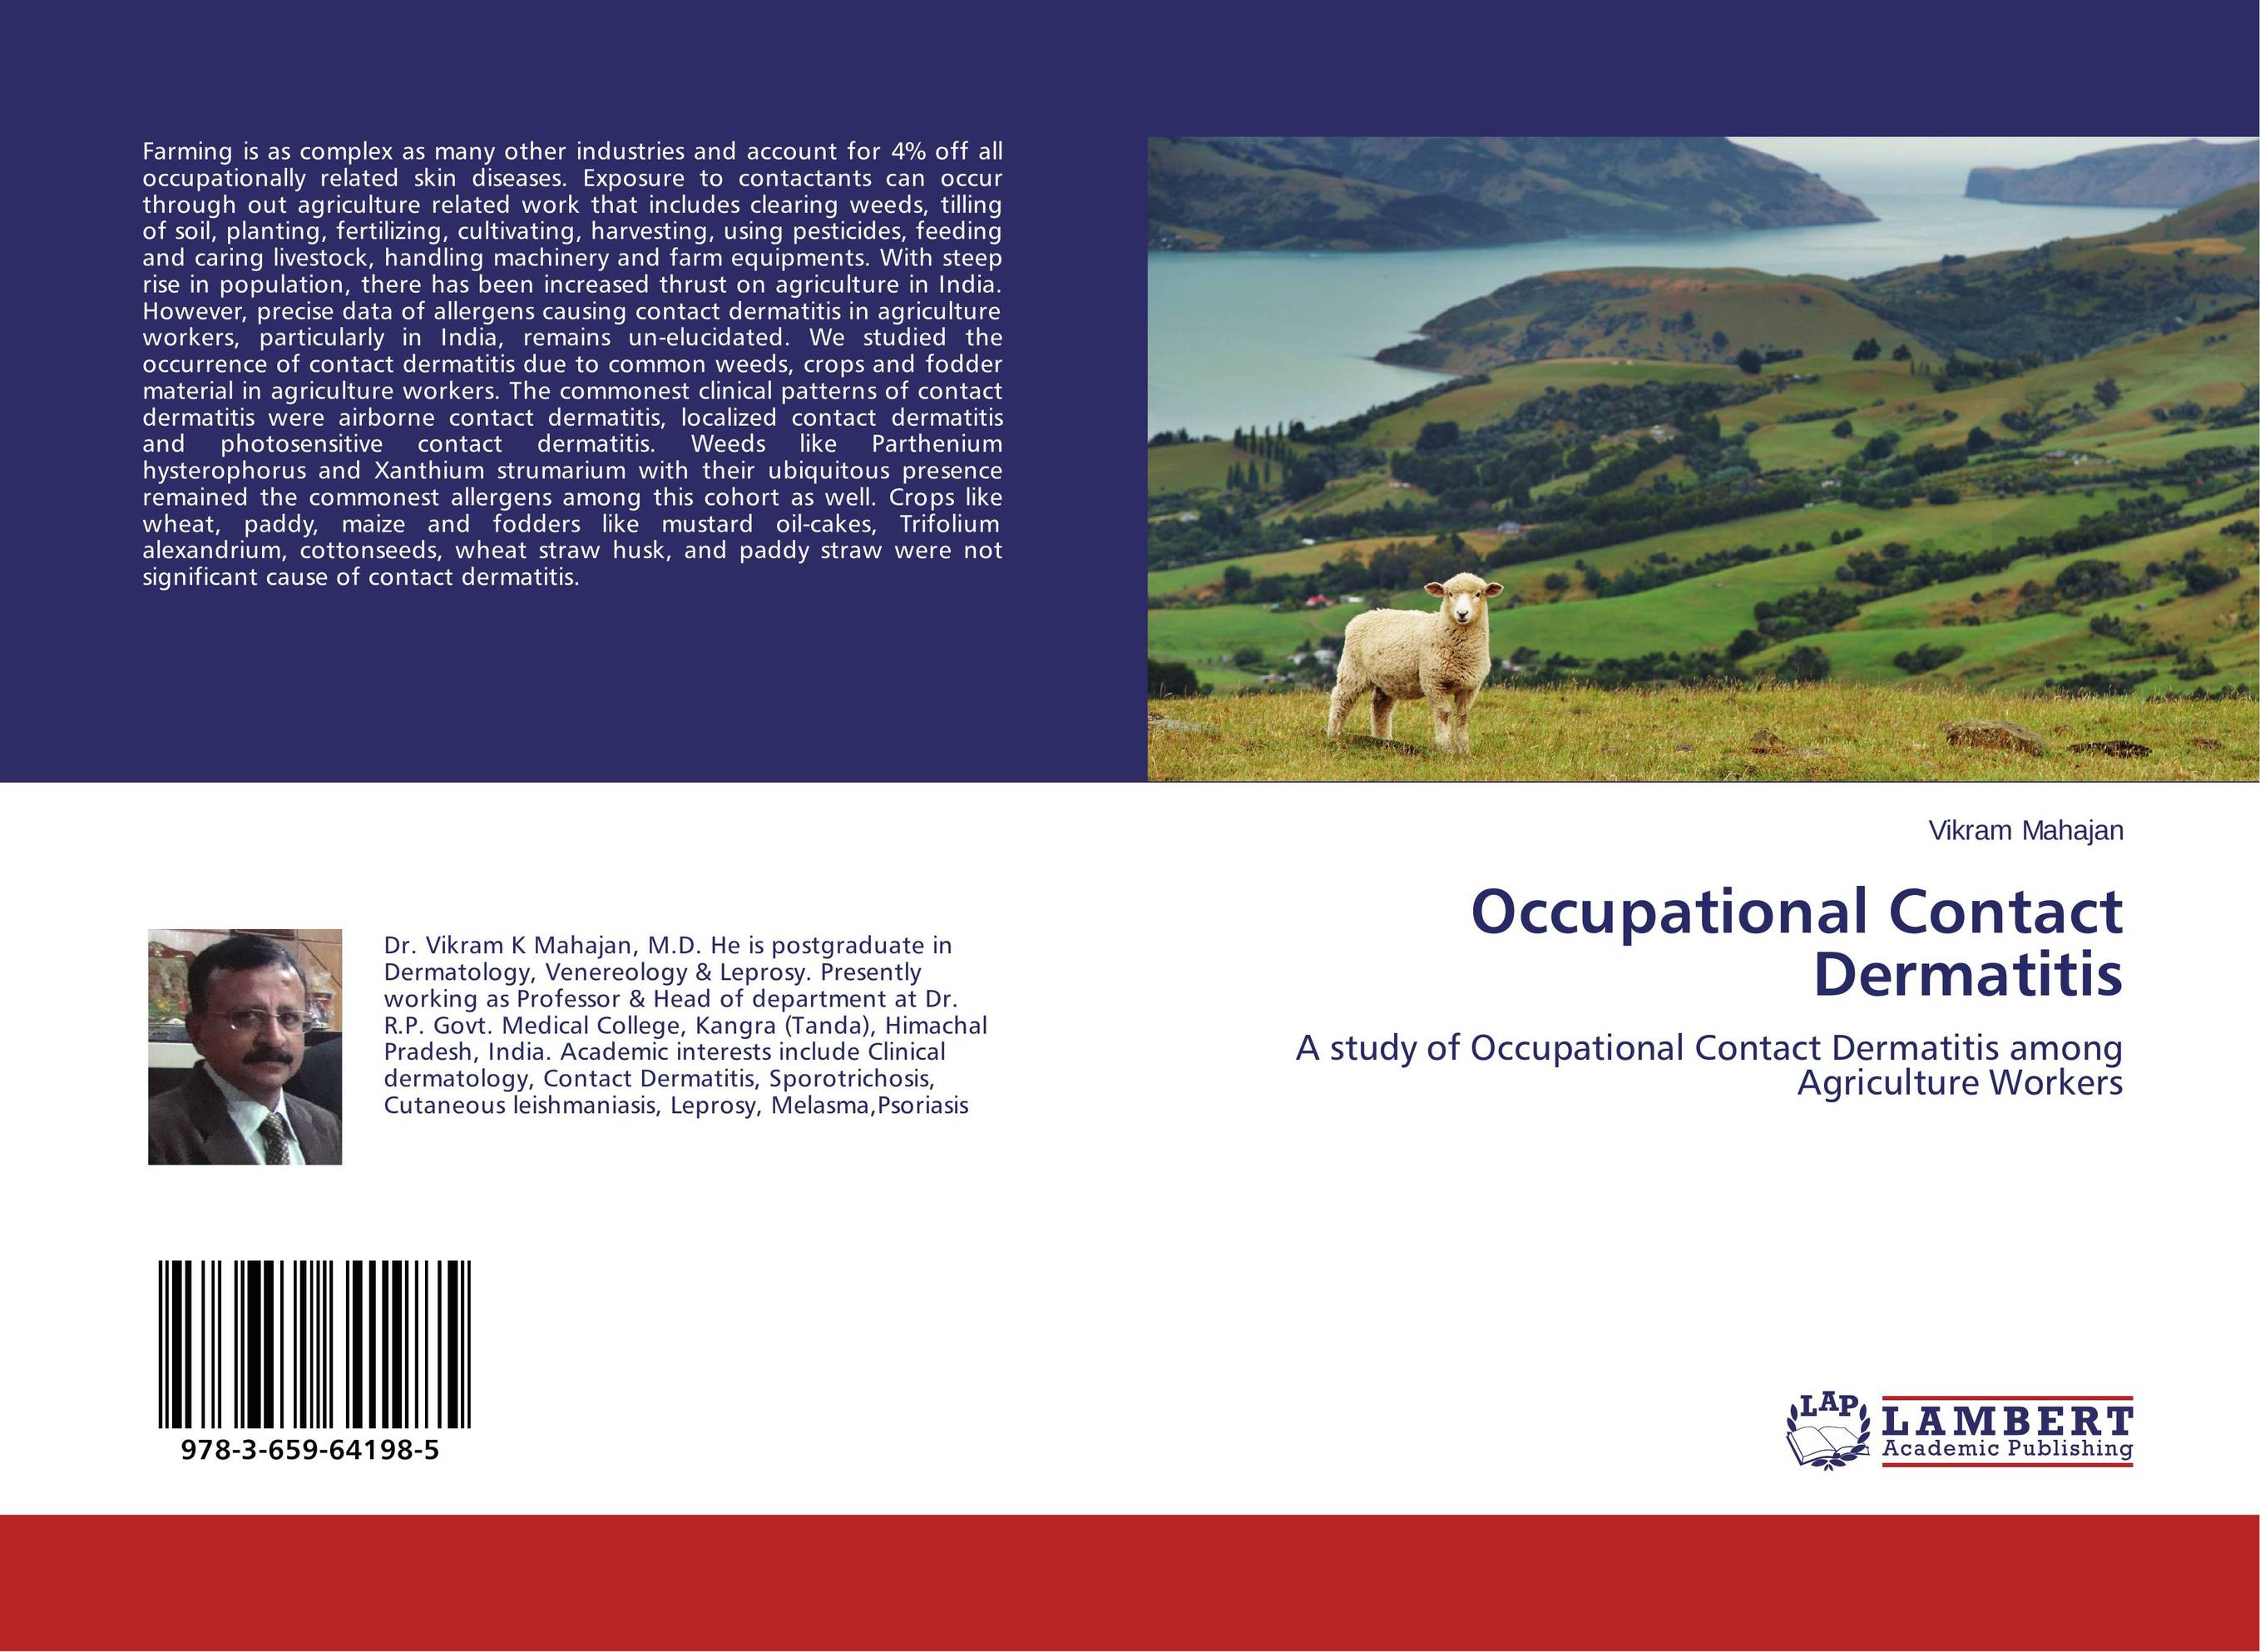 Occupational Contact Dermatitis pastoralism and agriculture pennar basin india